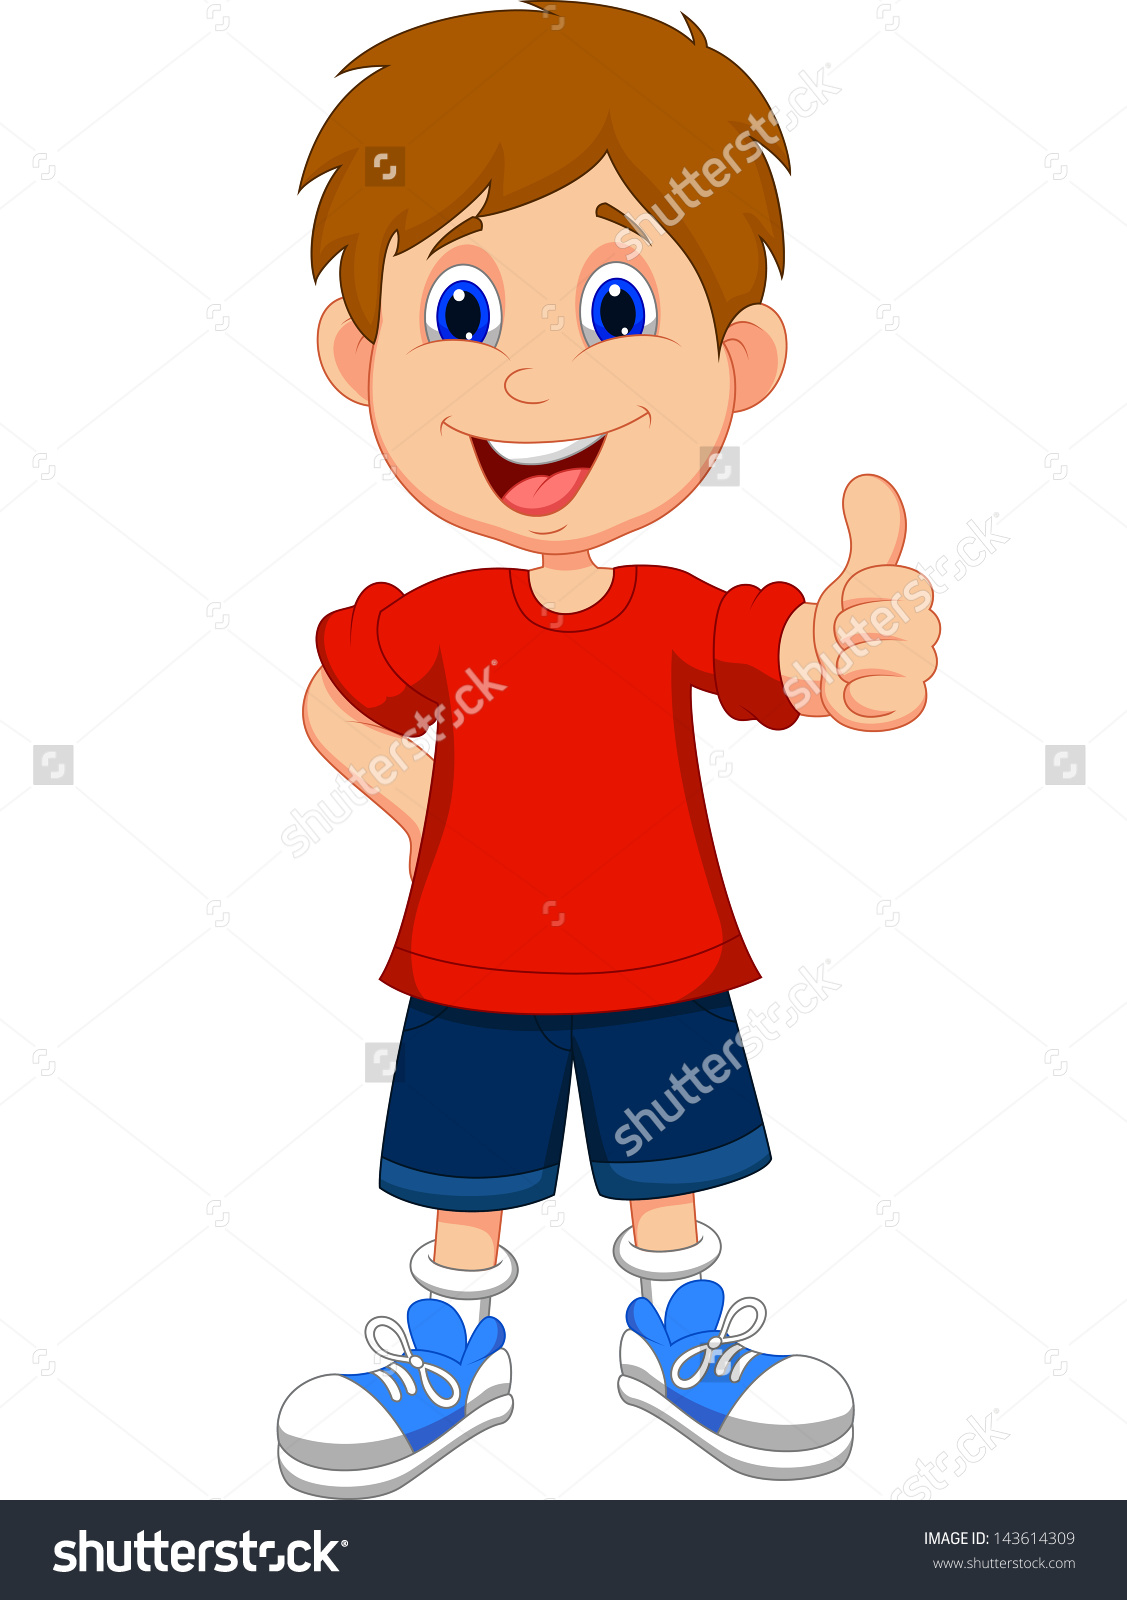 A boy giving a ball to a boy clipart. Cartoon you thumbs stock